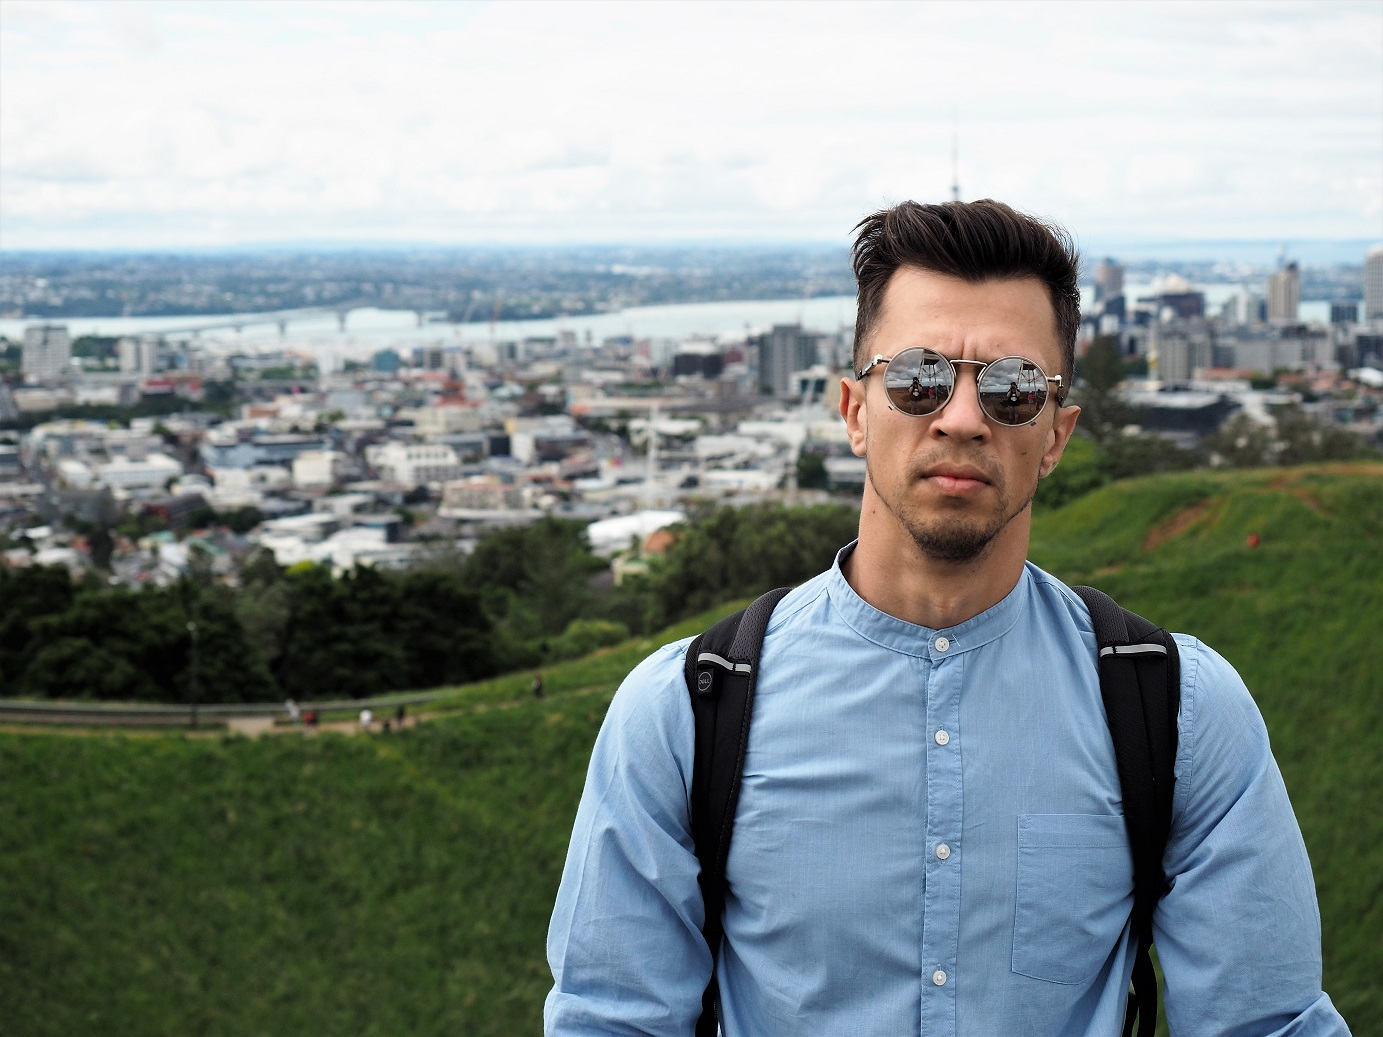 A guy and the Auckland panorama behind, New Zealand